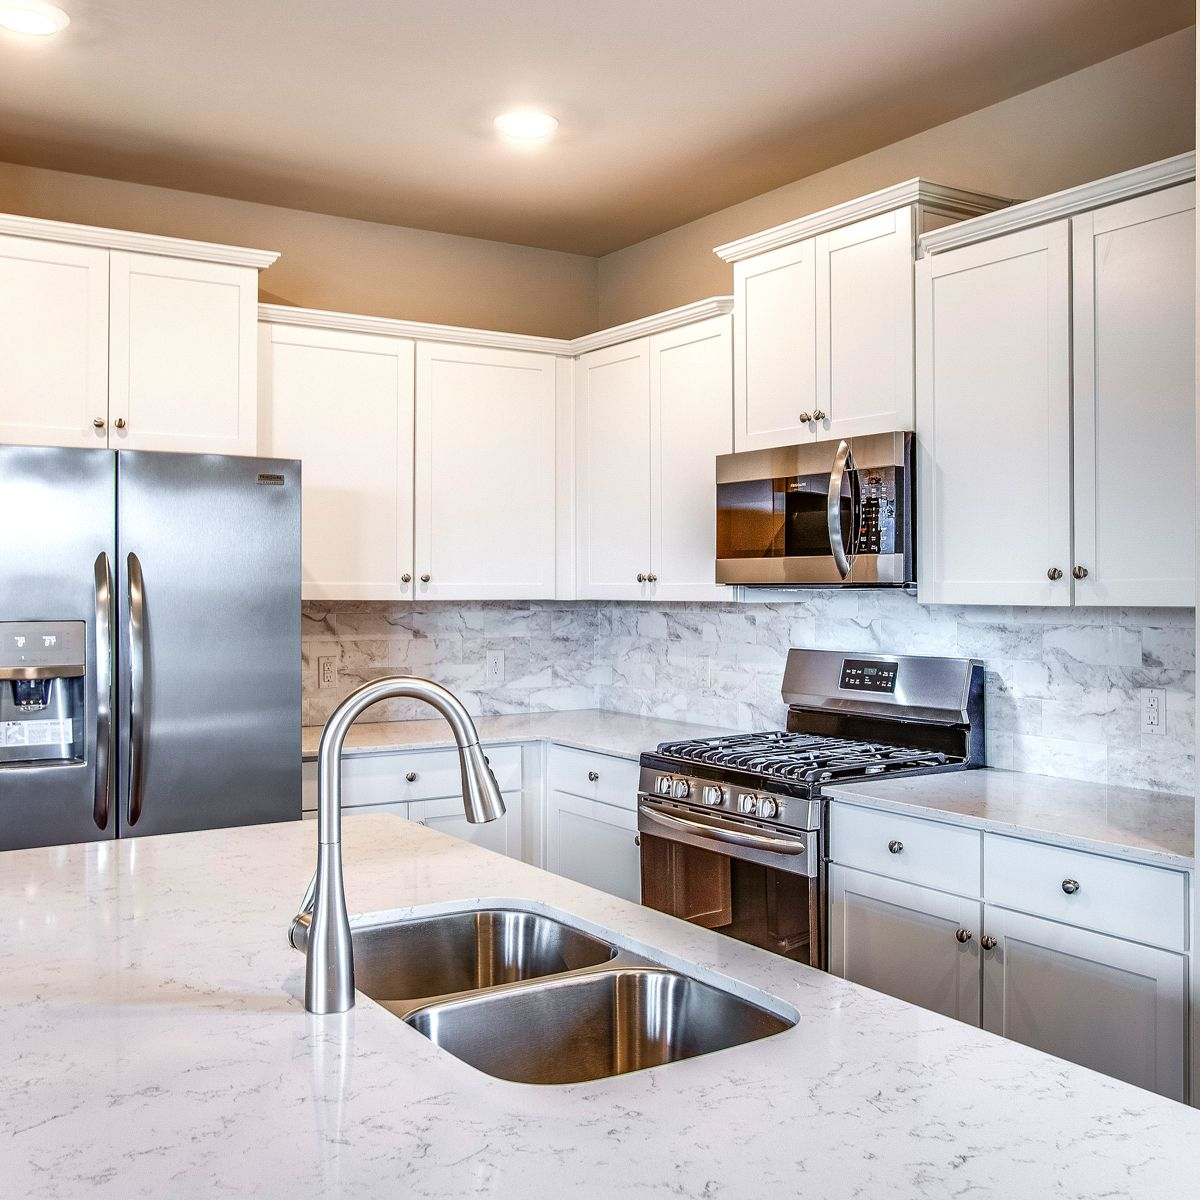 Are You Enchanted By The Quartz Countertops In This Bright White